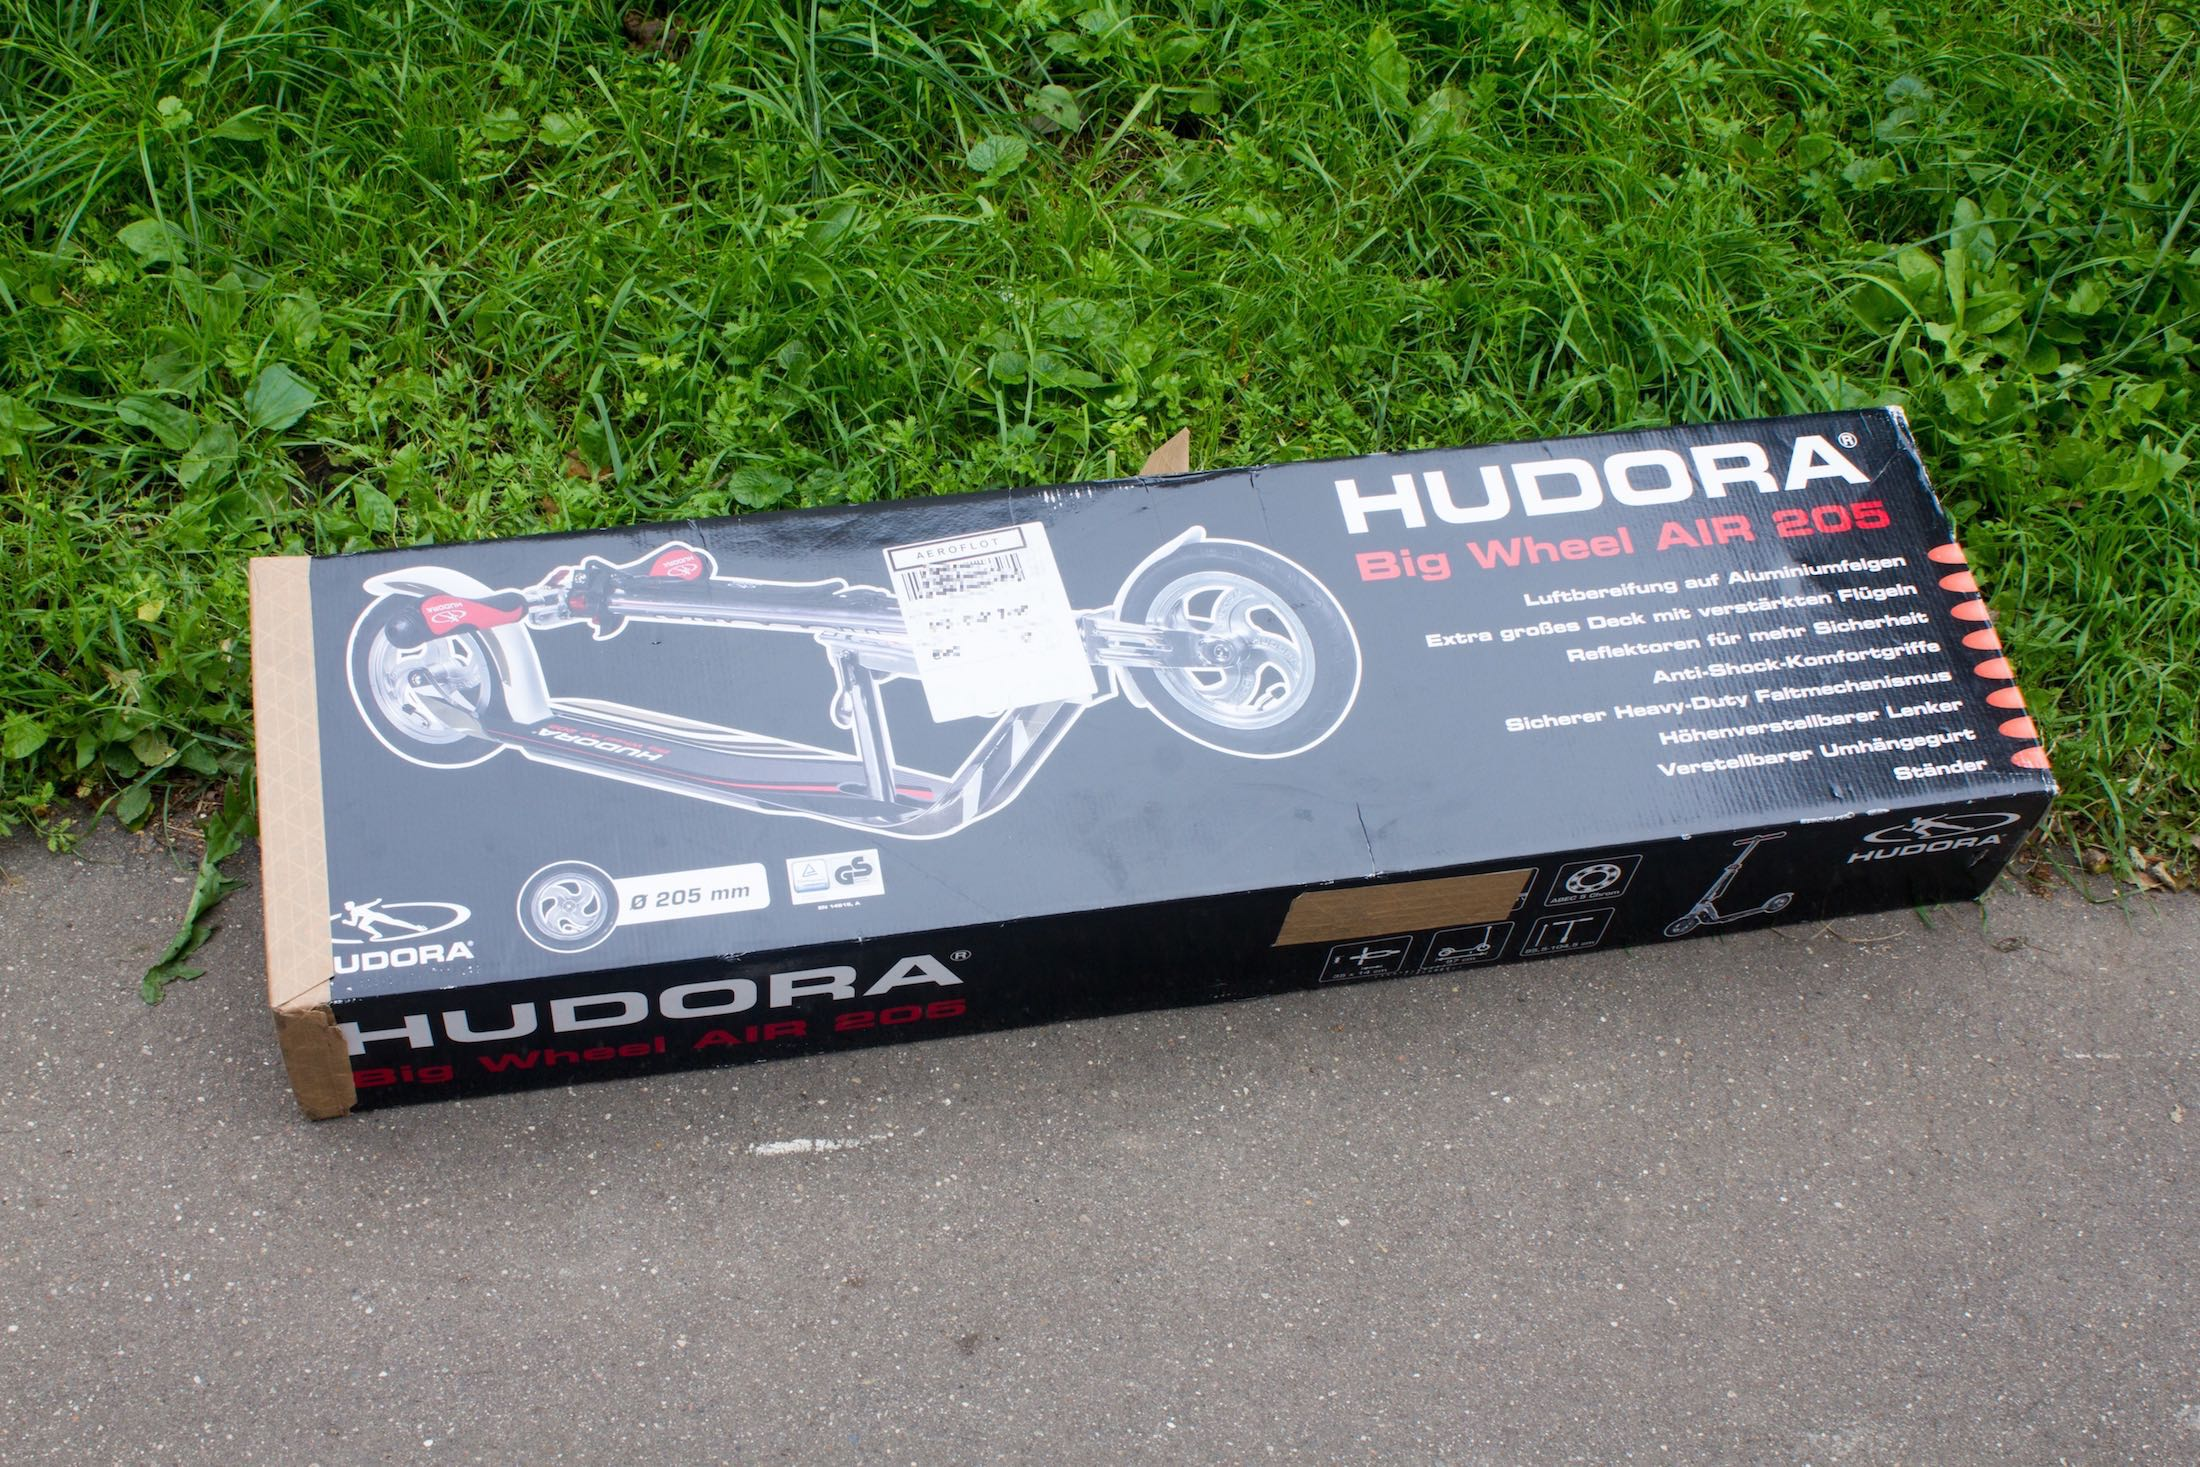 Hudora Big Wheel Air 205 Russia Review 39